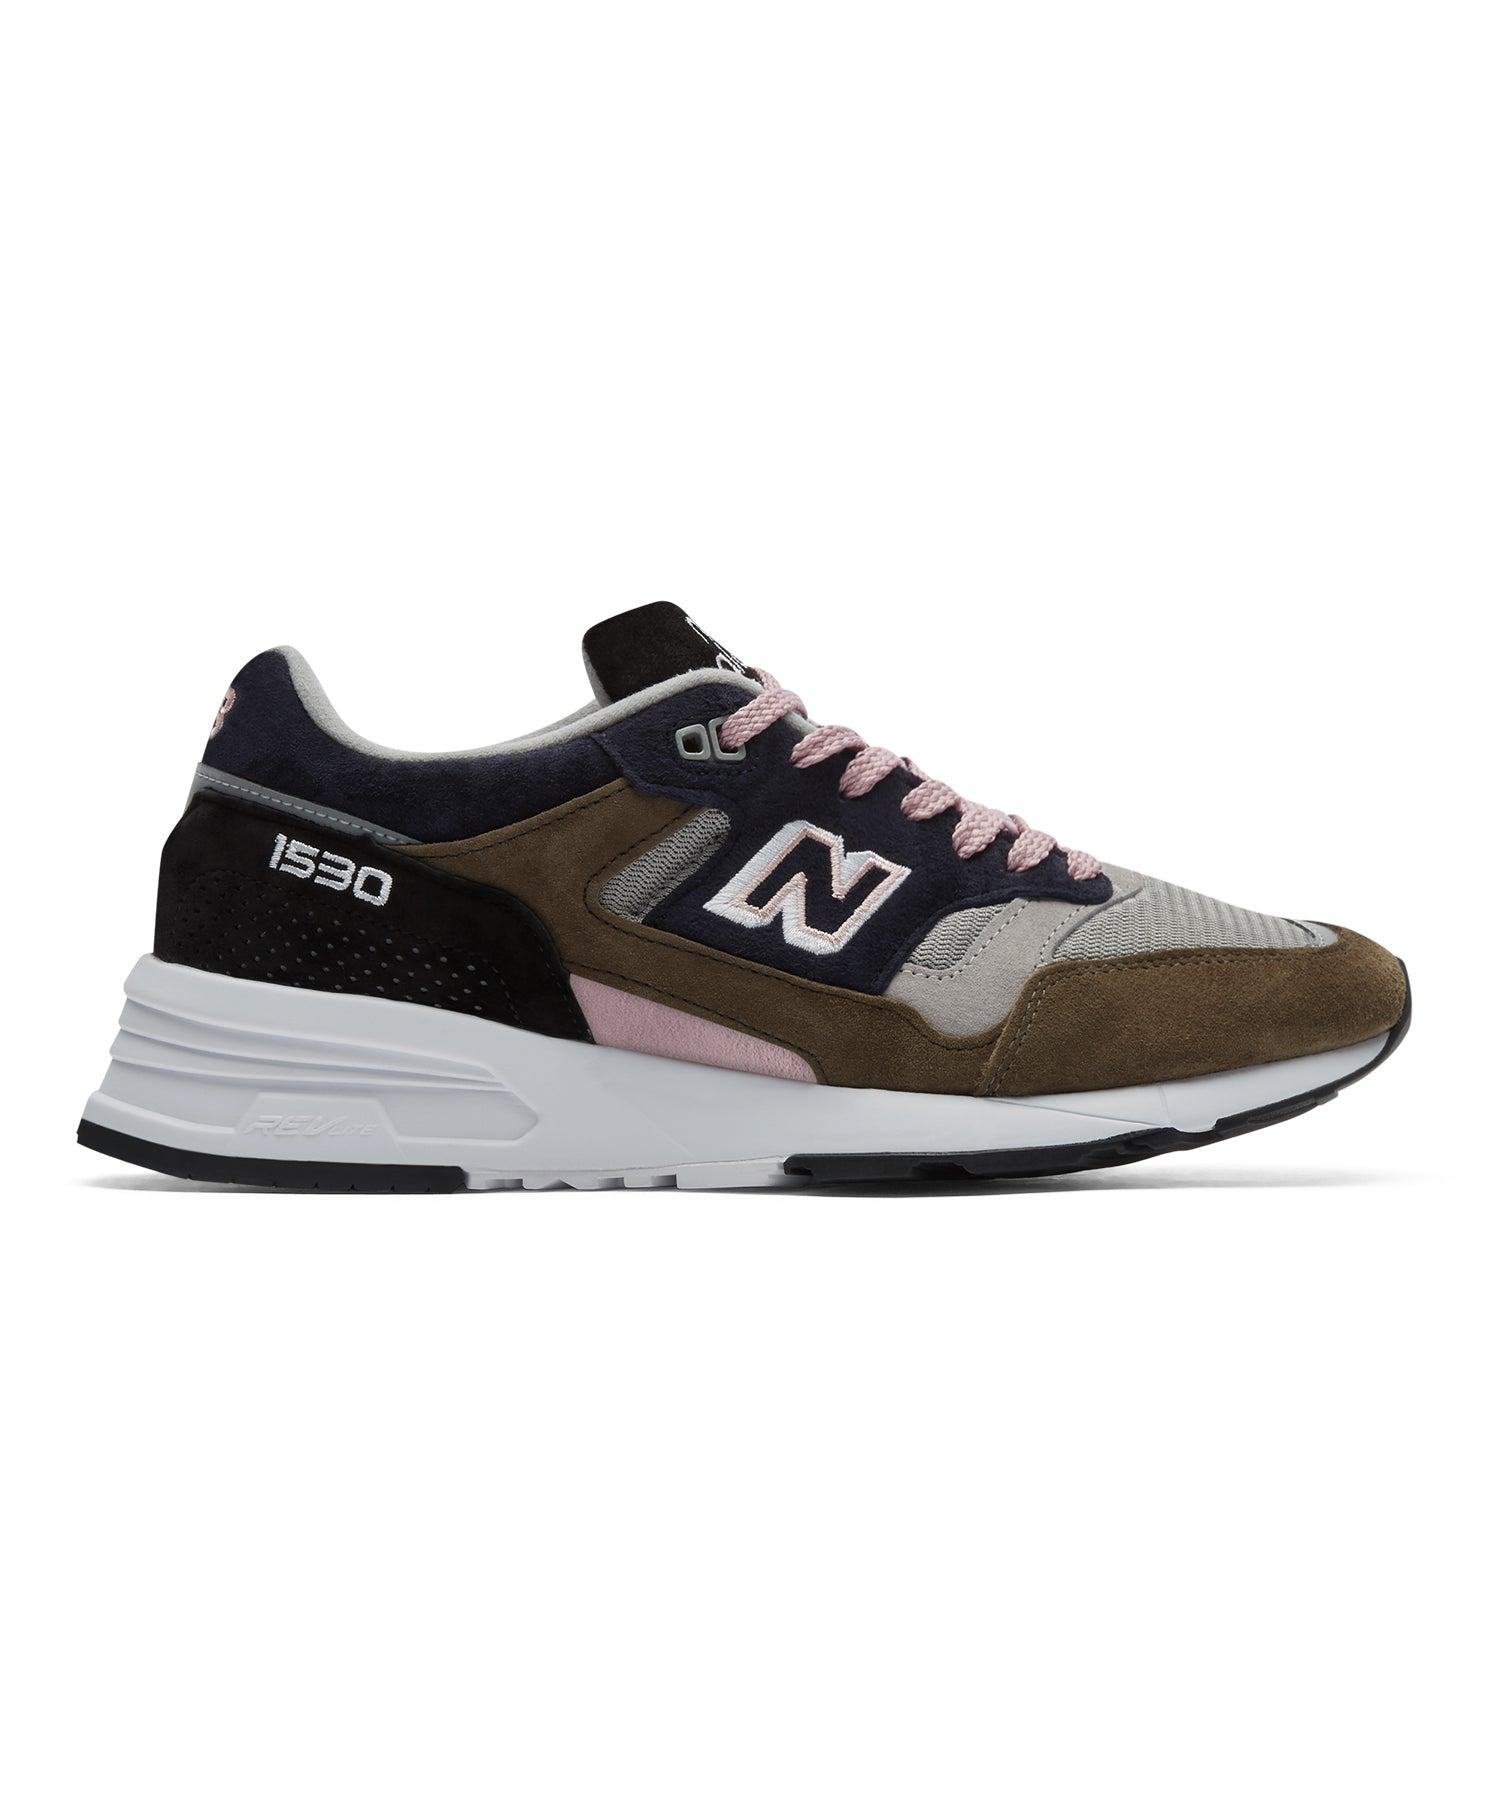 factory price f1693 a5c65 New Balance - Todd Snyder